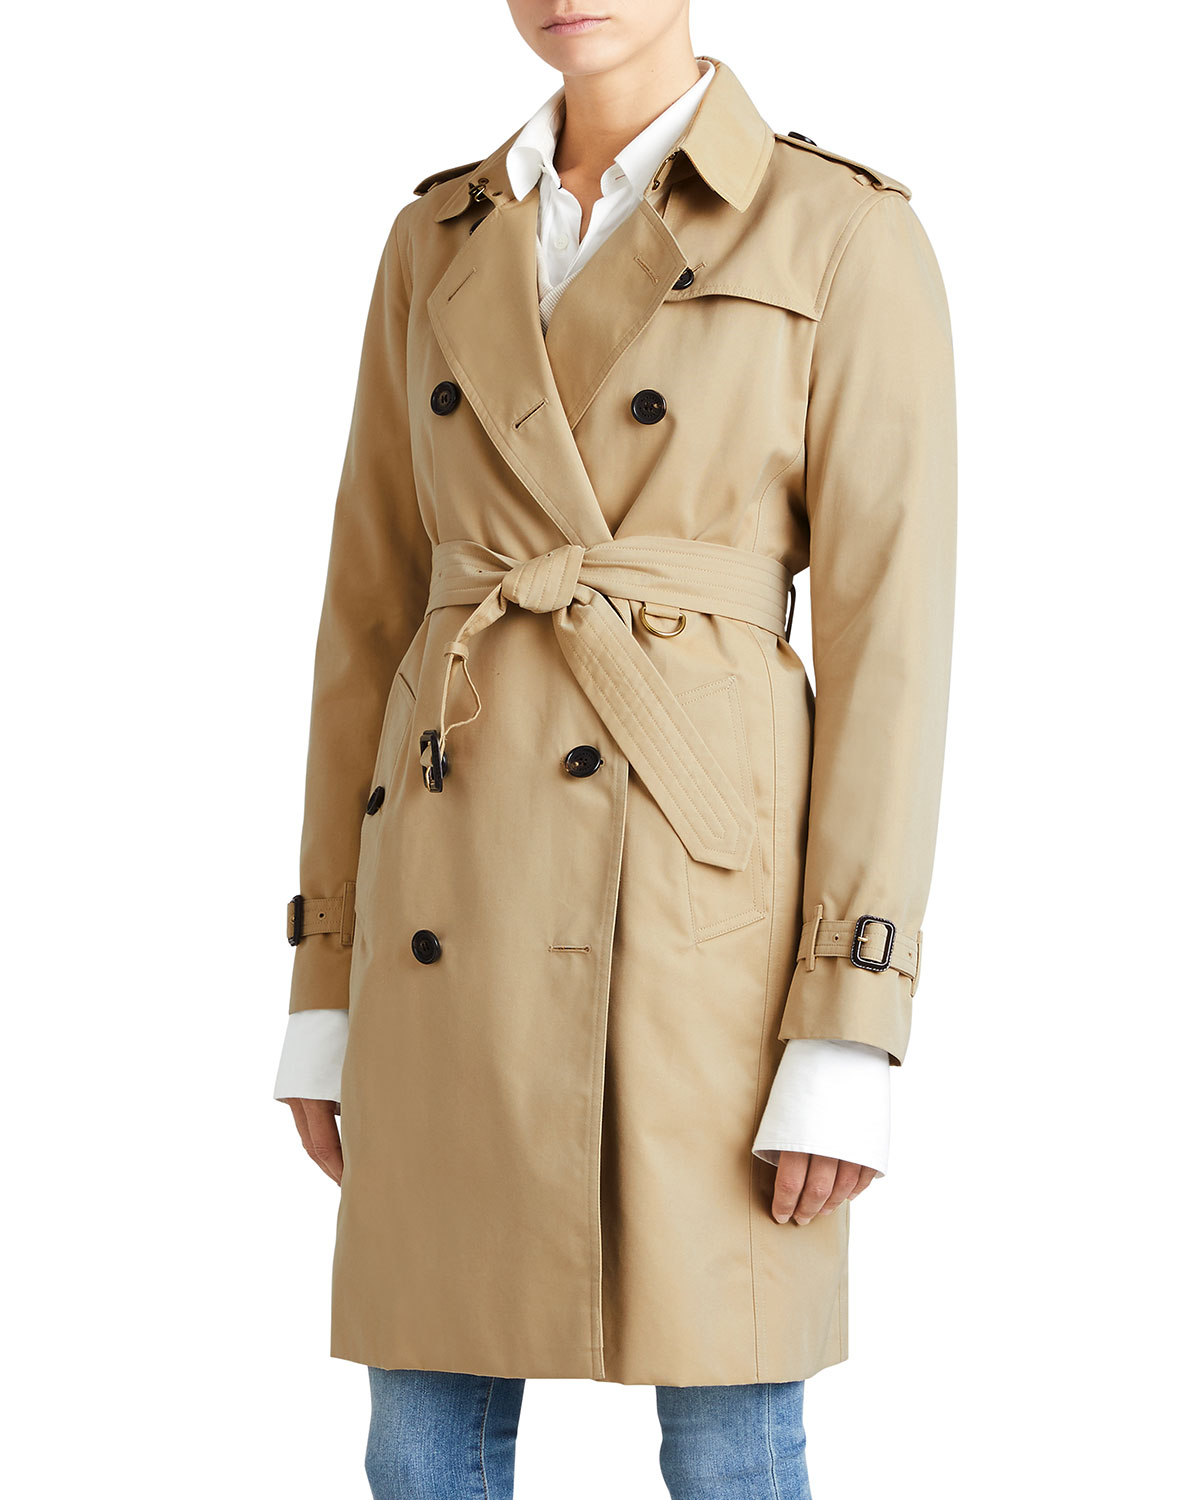 daddec9ae5f0 Burberry The Kensington - Long Heritage Trench Coat